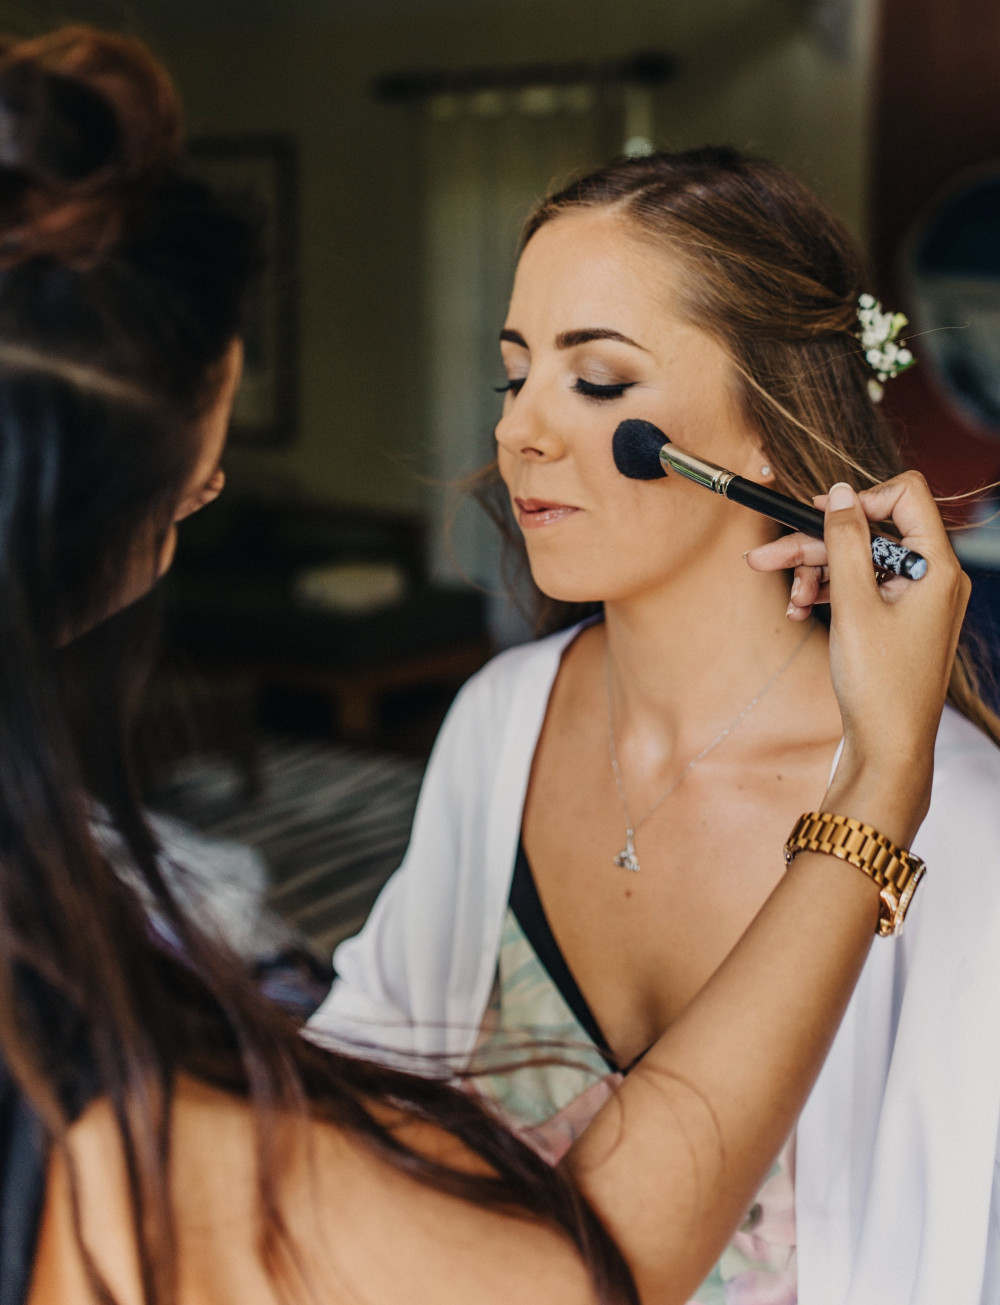 Bridal makeup application. - Make Me Bridal Artist: Nipona Khan Professional Hair & Makeup Artist. #gettingready #bridalmakeup #weddingmakeupartistdorset #bridalmakeupartist #bohobride #weddingmakeupartisthampshire